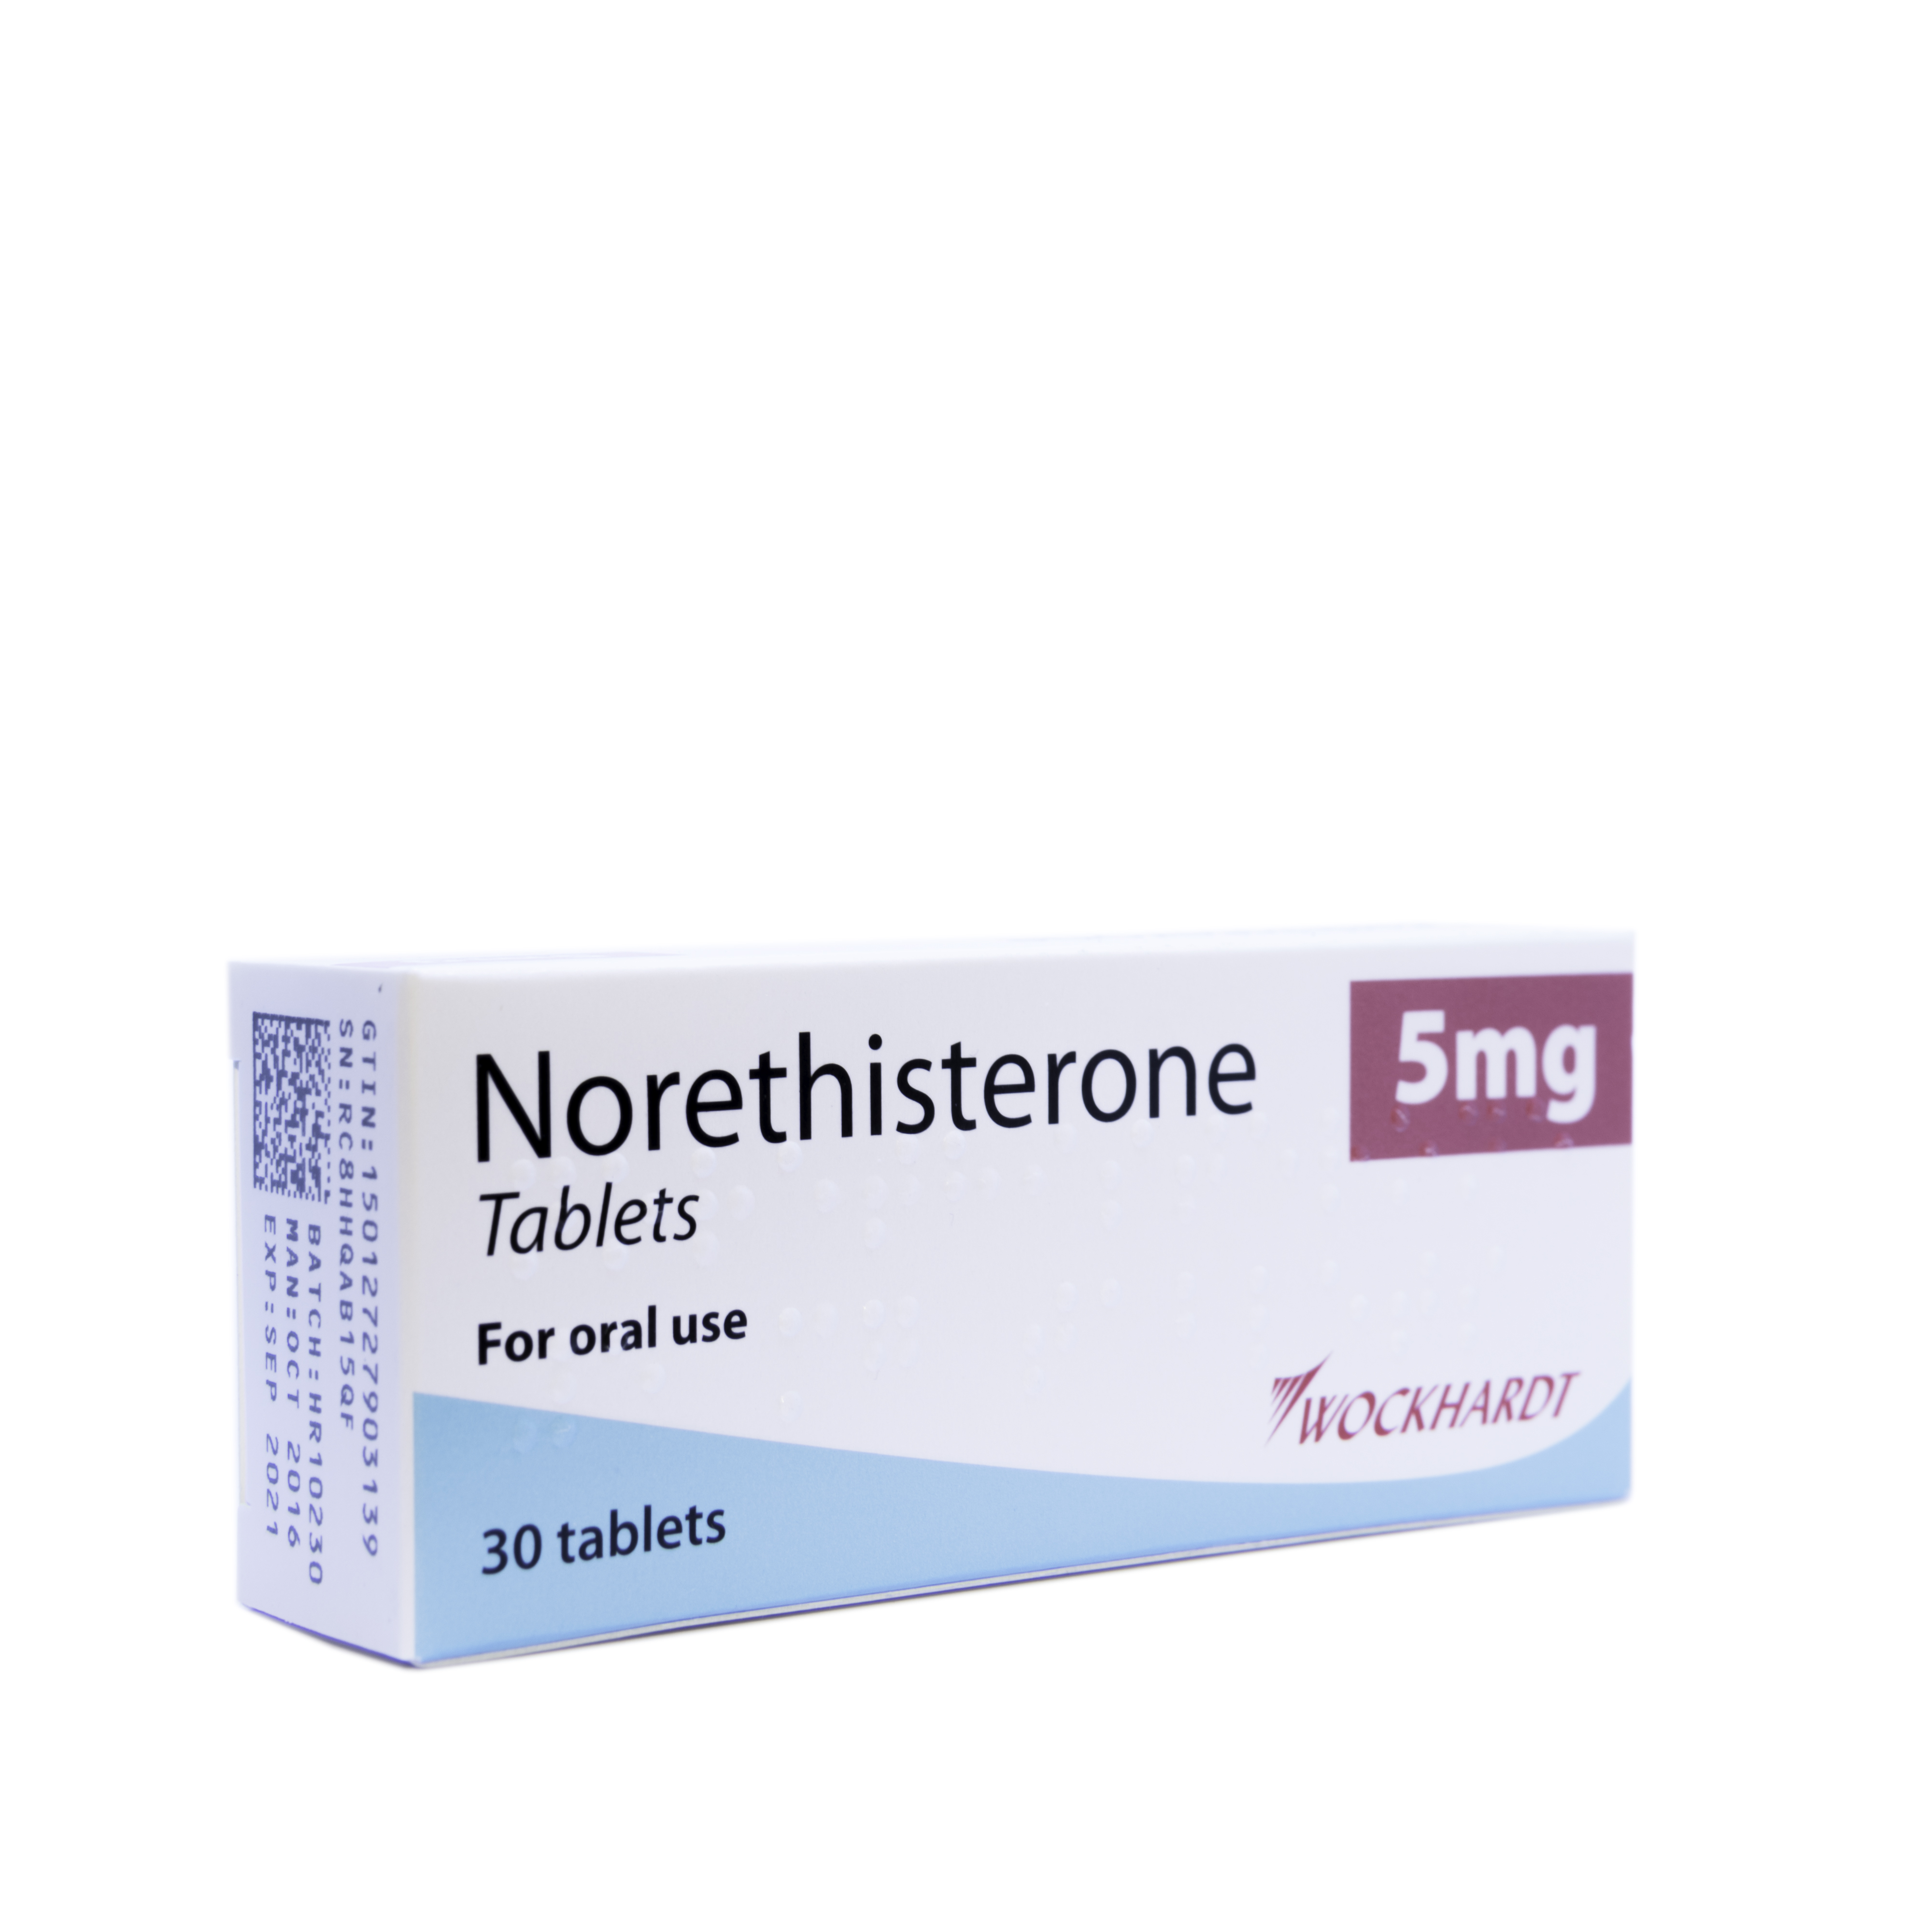 Norethisterone 5mg - 30 Tablets